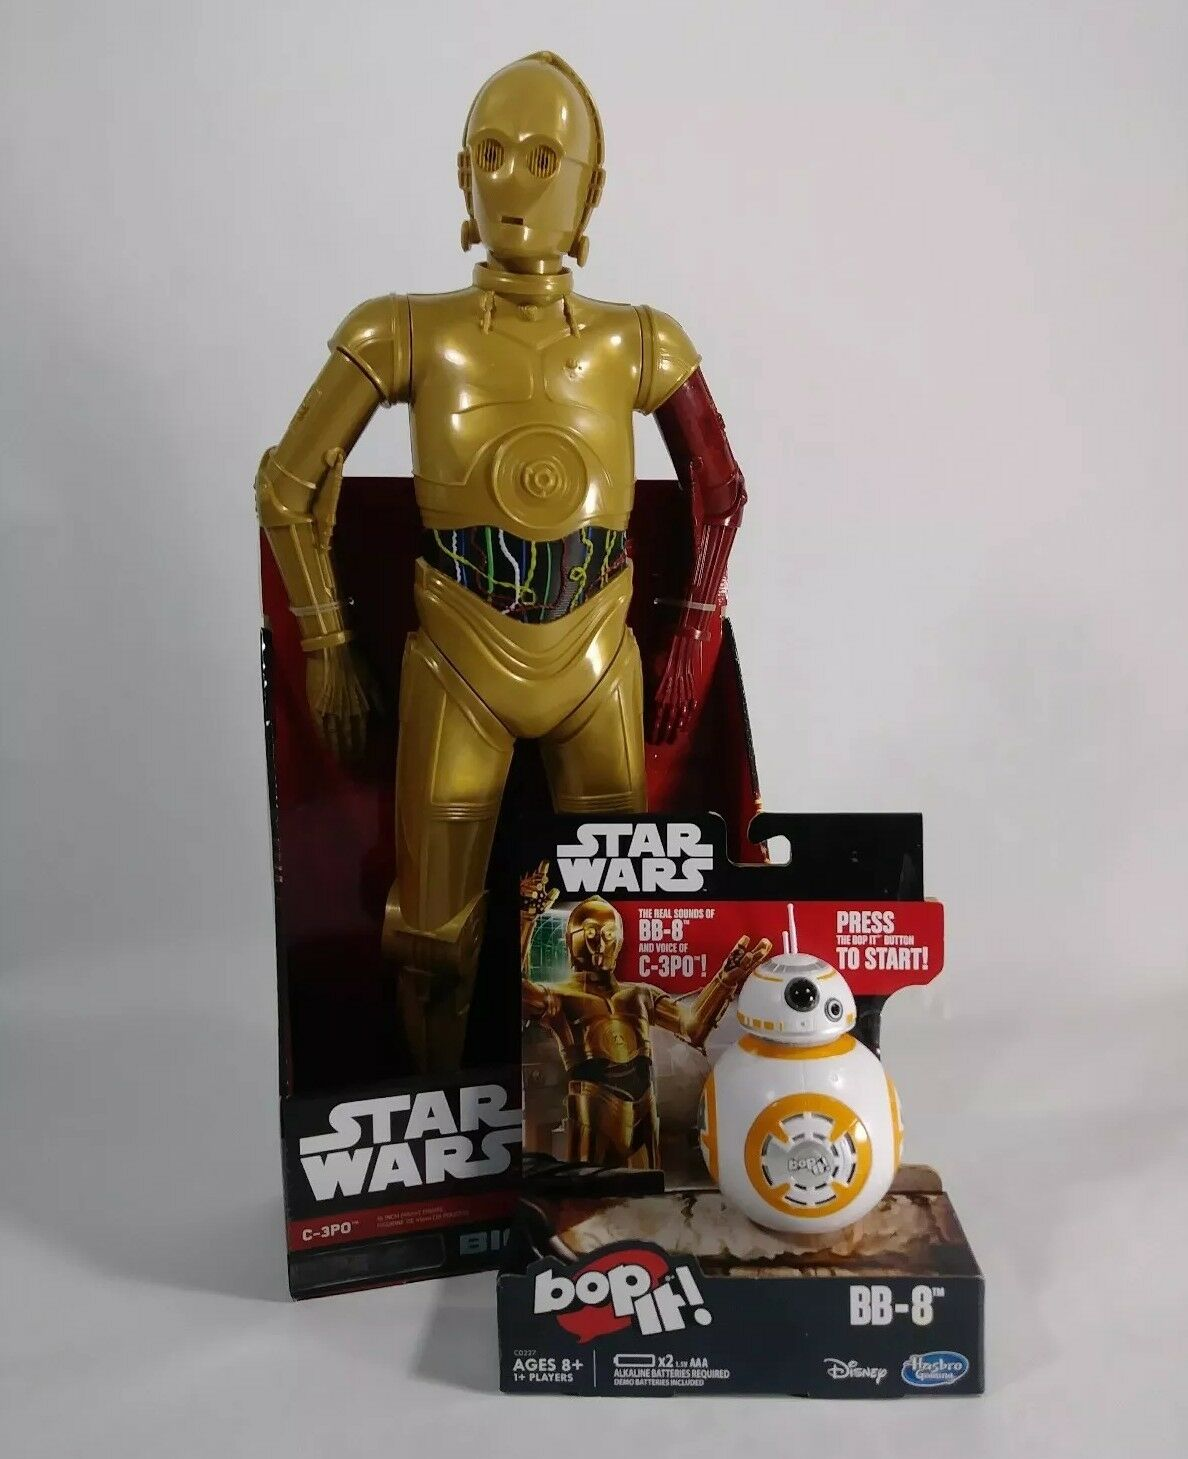 Star Wars Big Figs 18  Red Arm C-3PO Action Figure and Bop-it BB-8  BONUS ITEMS